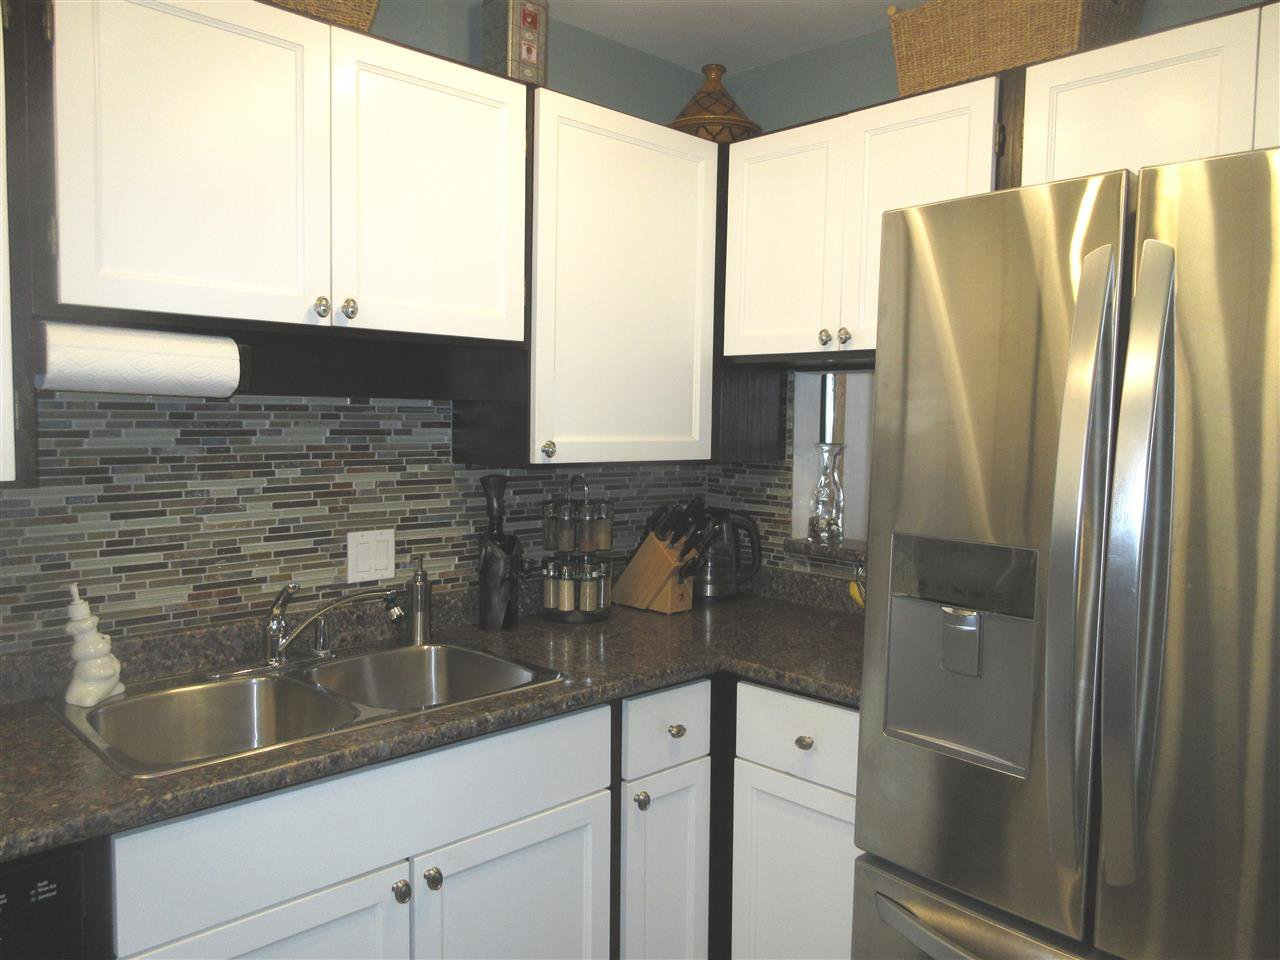 """Main Photo: 206 1055 W 13TH Avenue in Vancouver: Fairview VW Condo for sale in """"OAK WEST"""" (Vancouver West)  : MLS®# R2380778"""